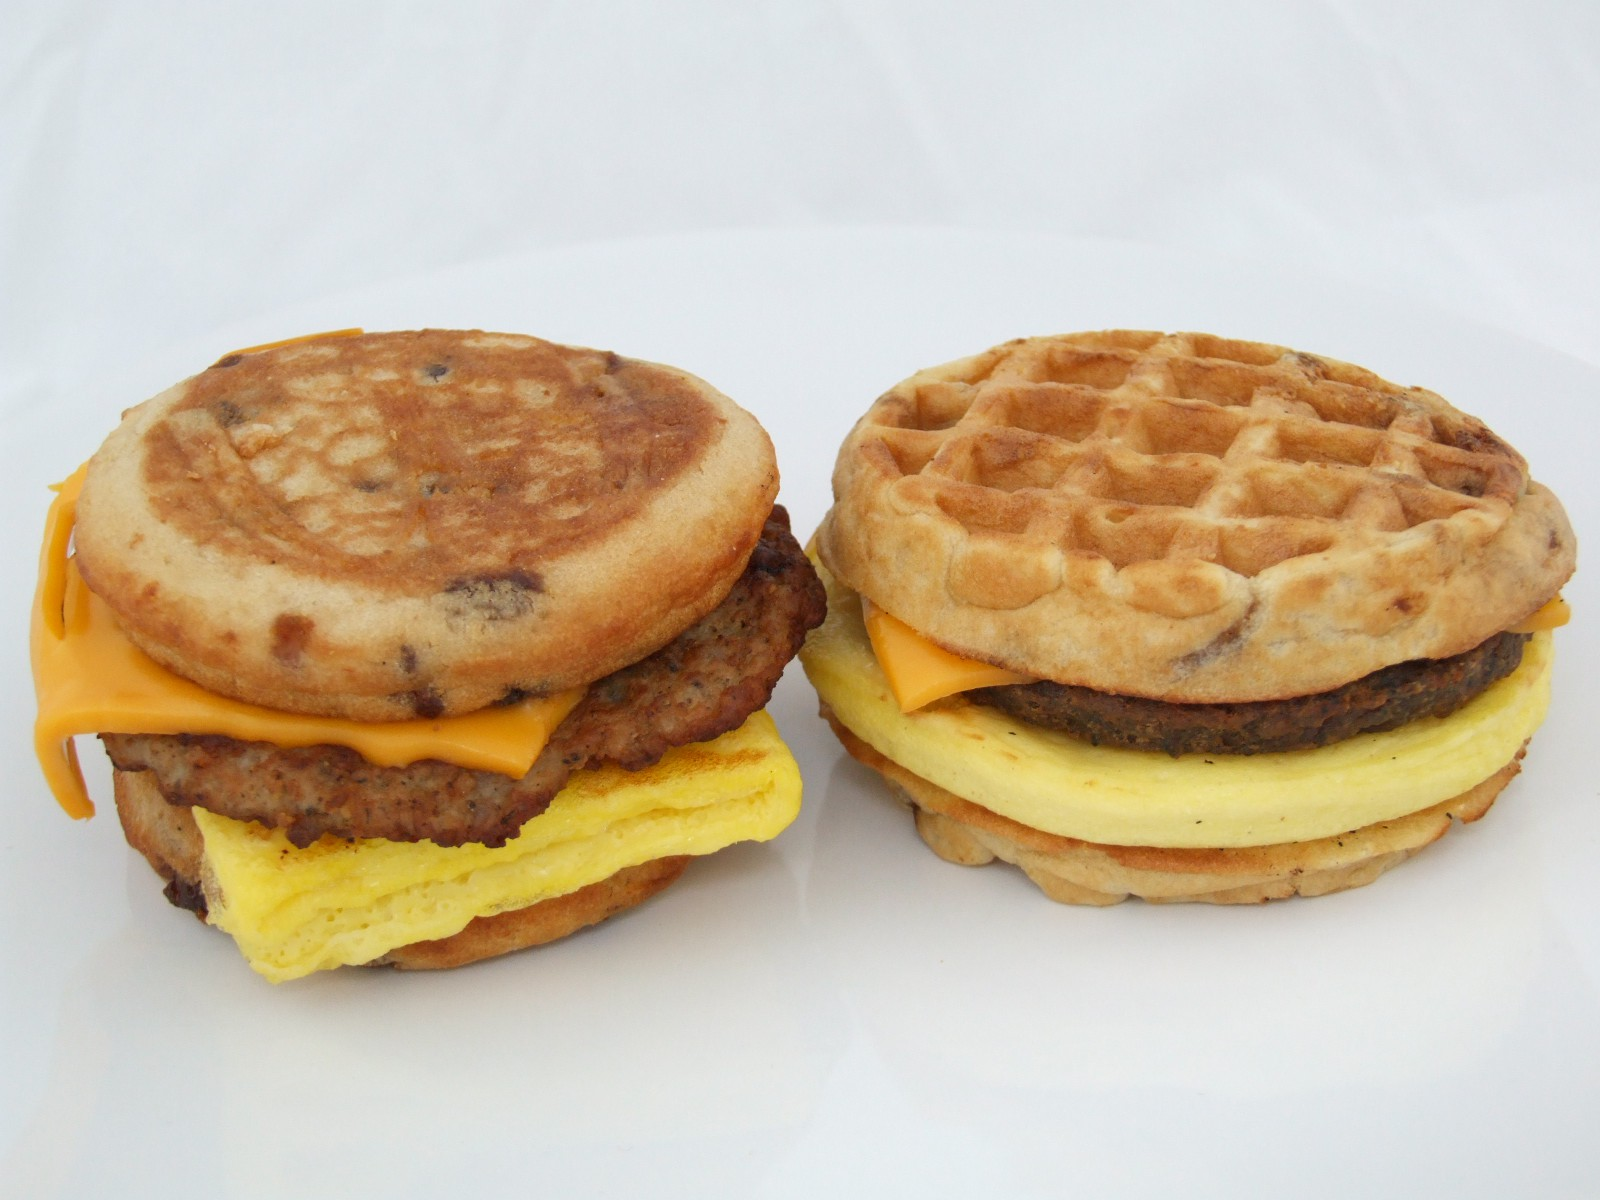 Left: McGriddle, Right: Waffle Sandwich